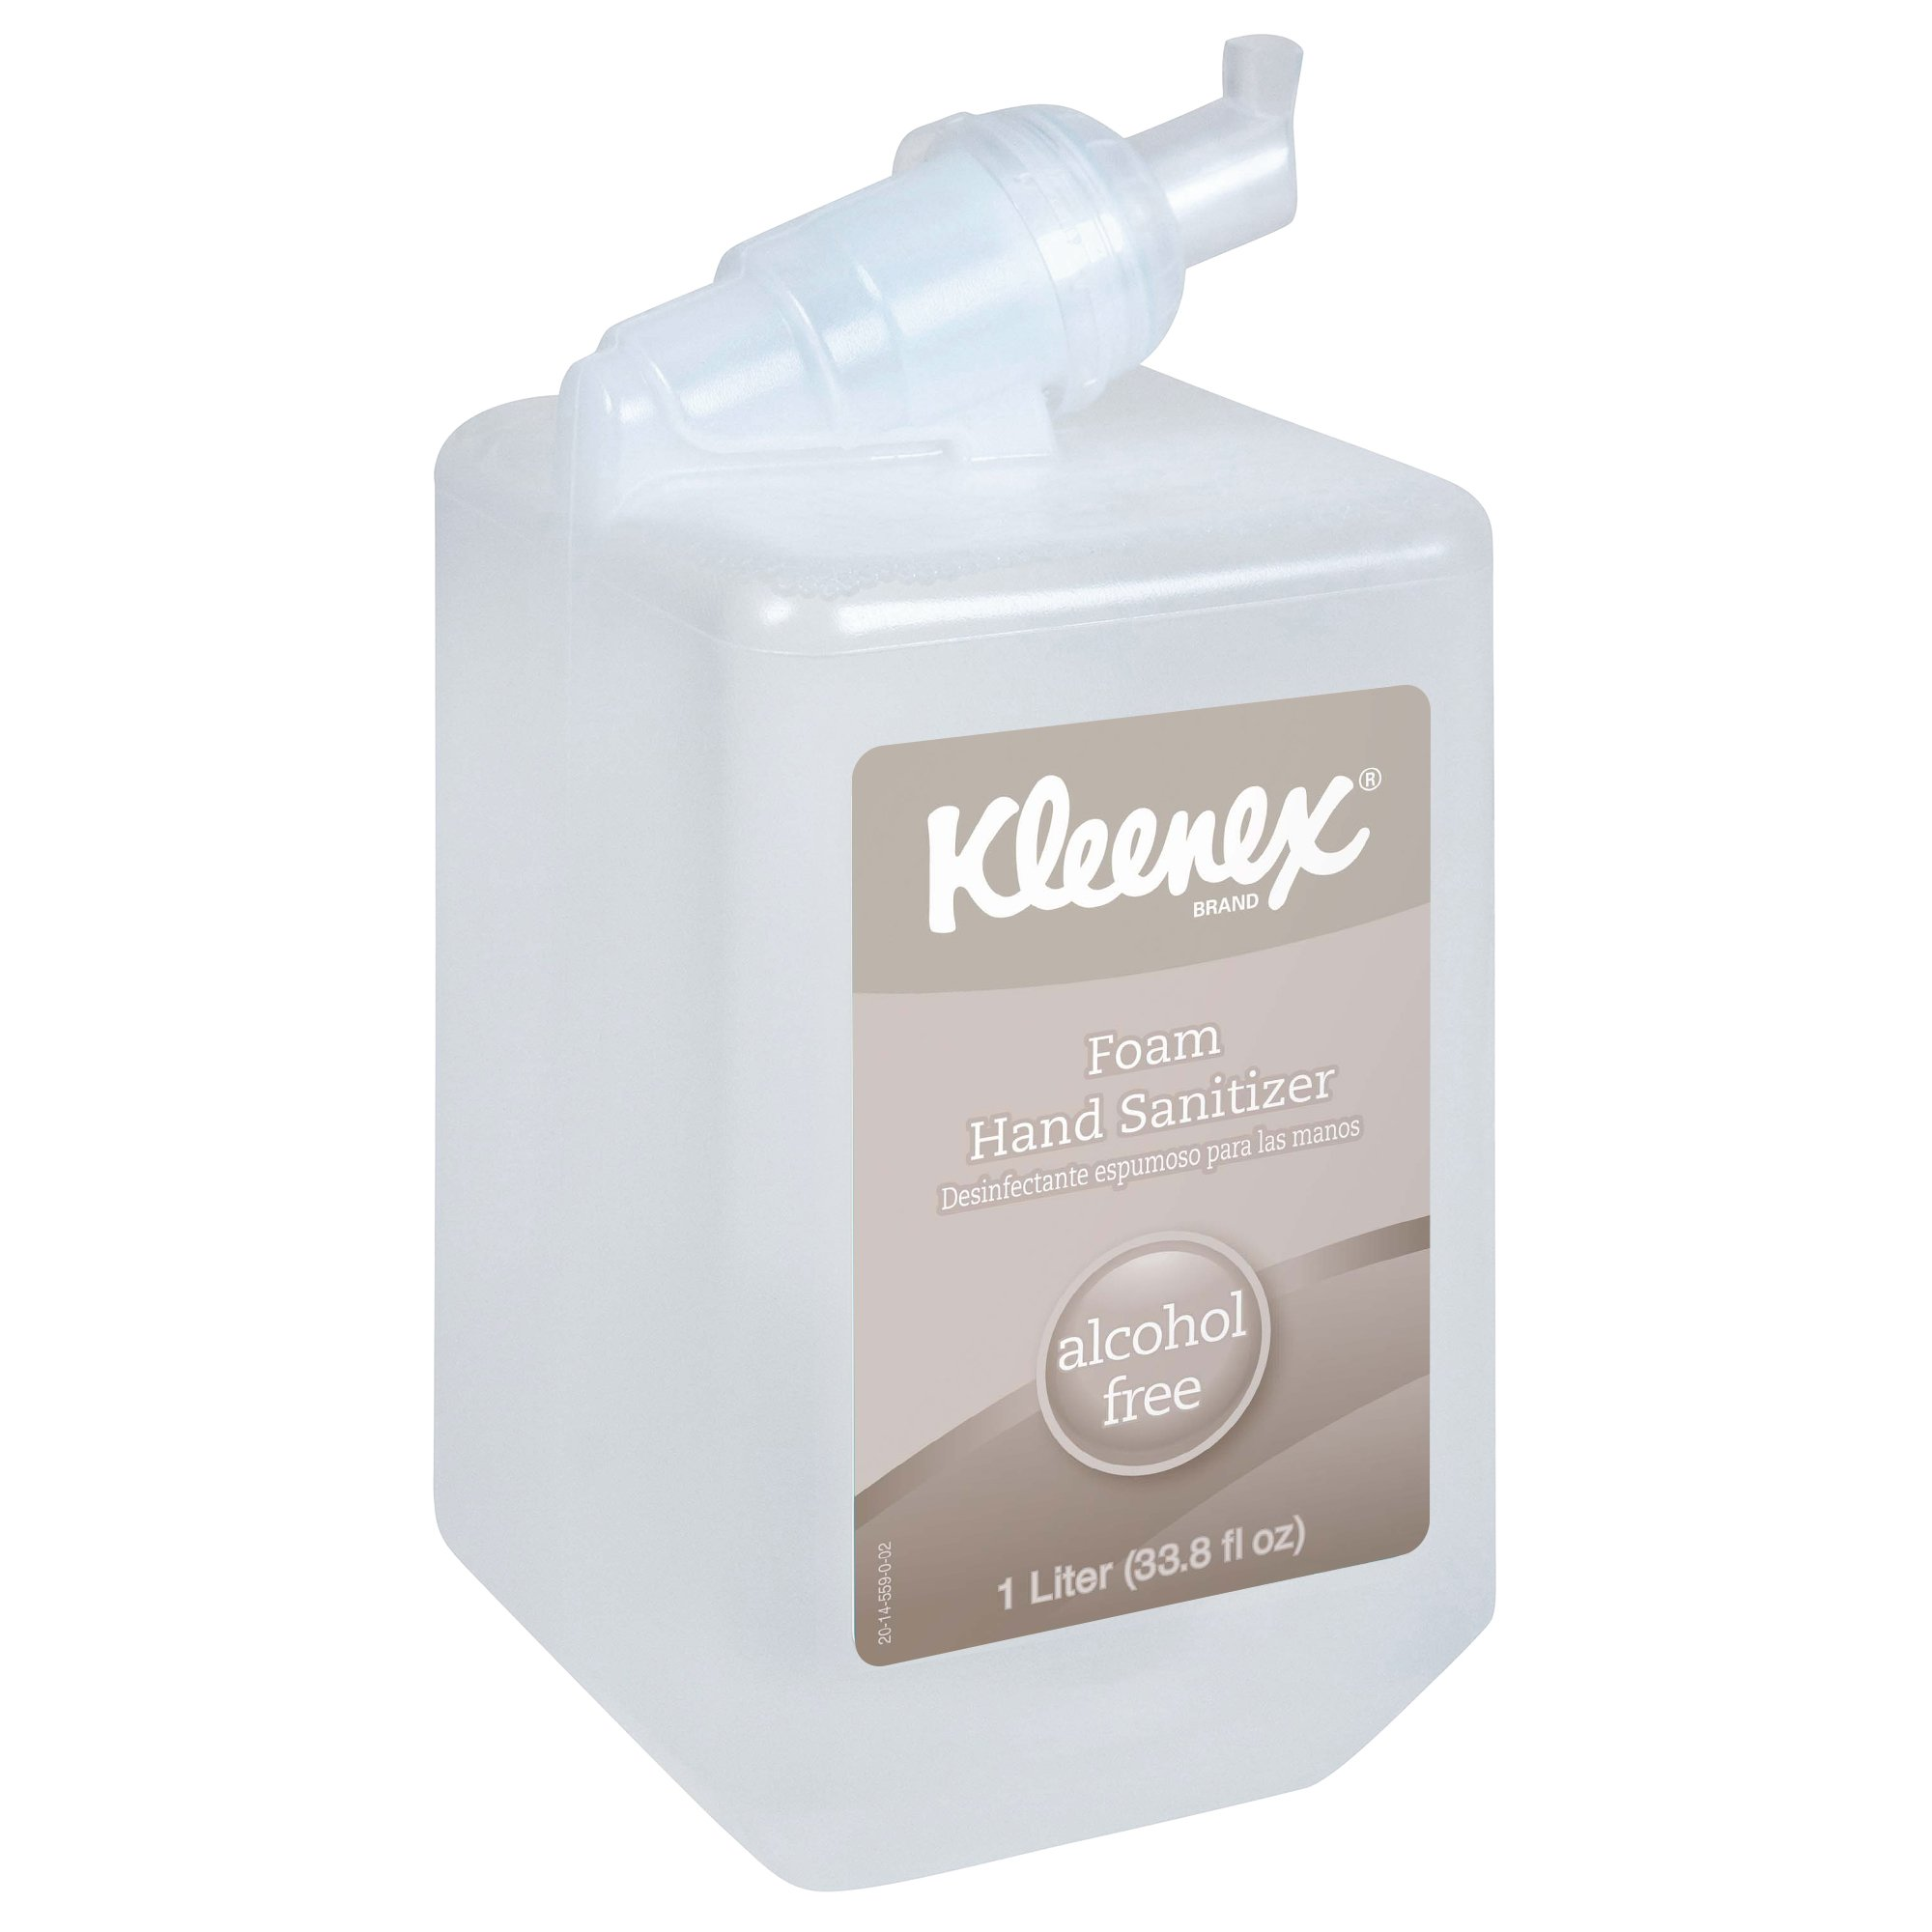 Kleenex Alcohol Free Foam Hand Sanitizer (12977), Clear, Unscented, 1.0 L Cassette for Manual Dispenser, 6 / Case by Kimberly-Clark Professional